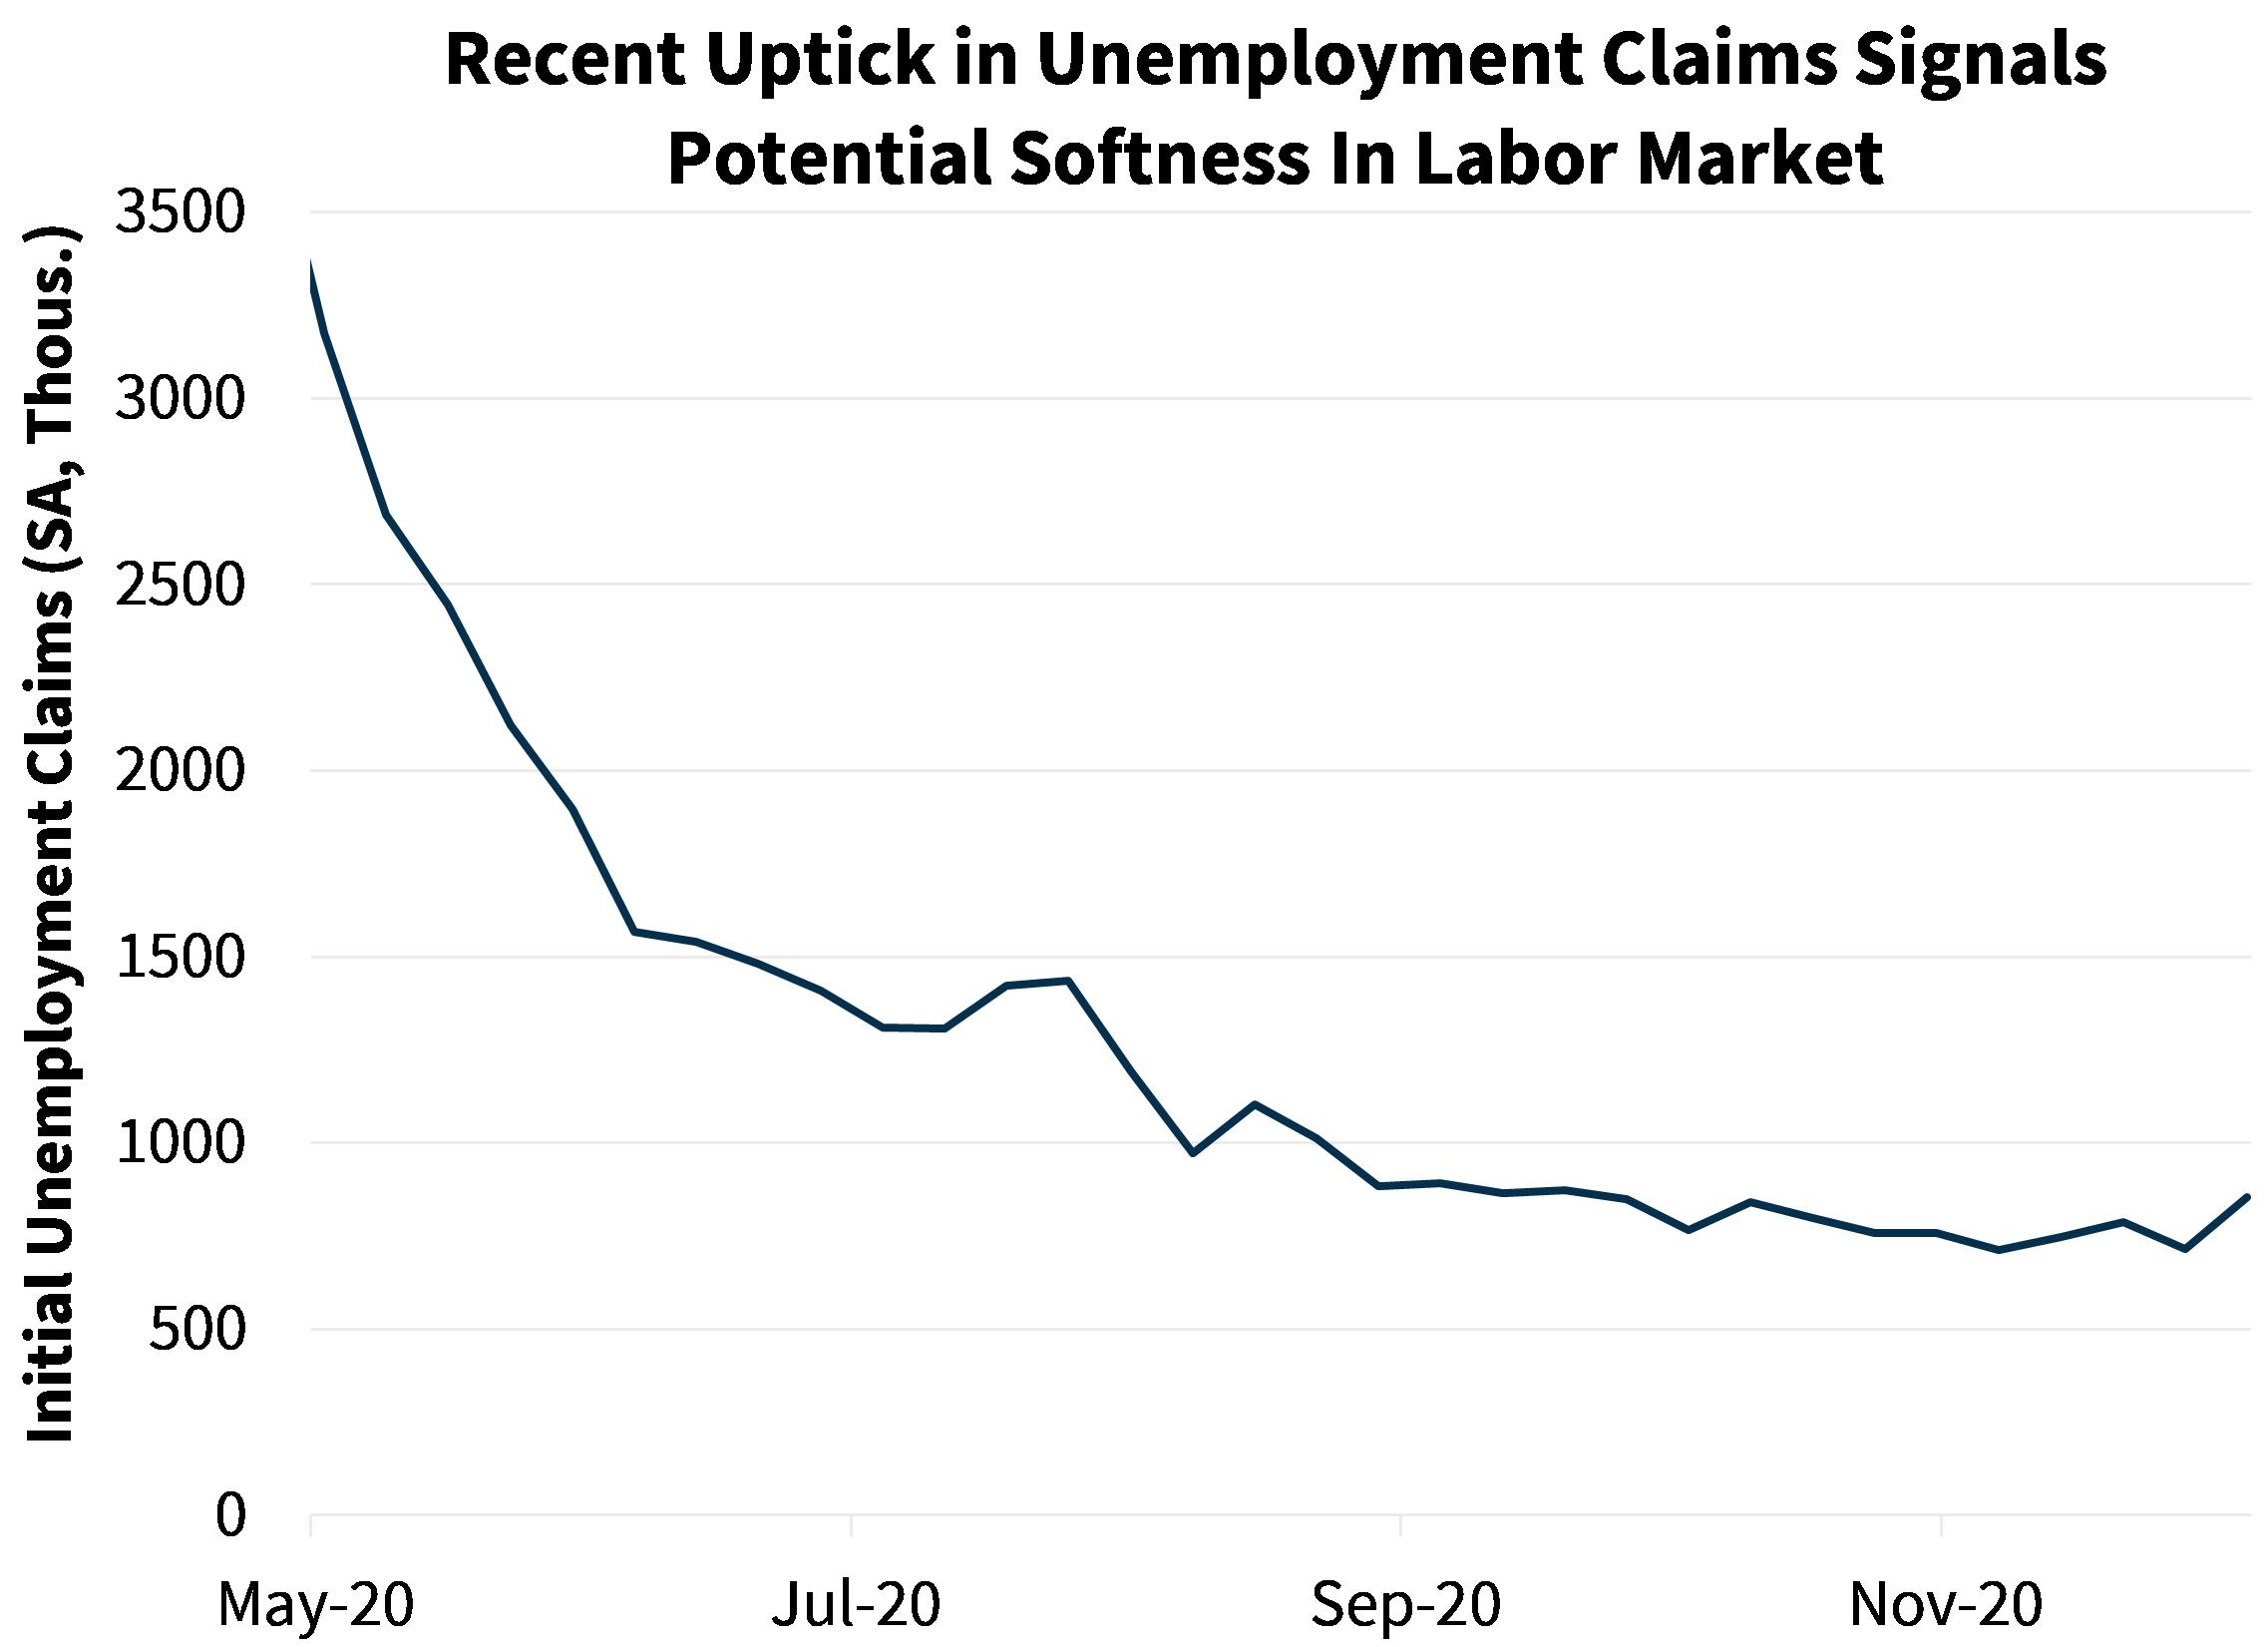 Recent Uptick in Unemployment Claims Signals Potential Softness in Labor Market